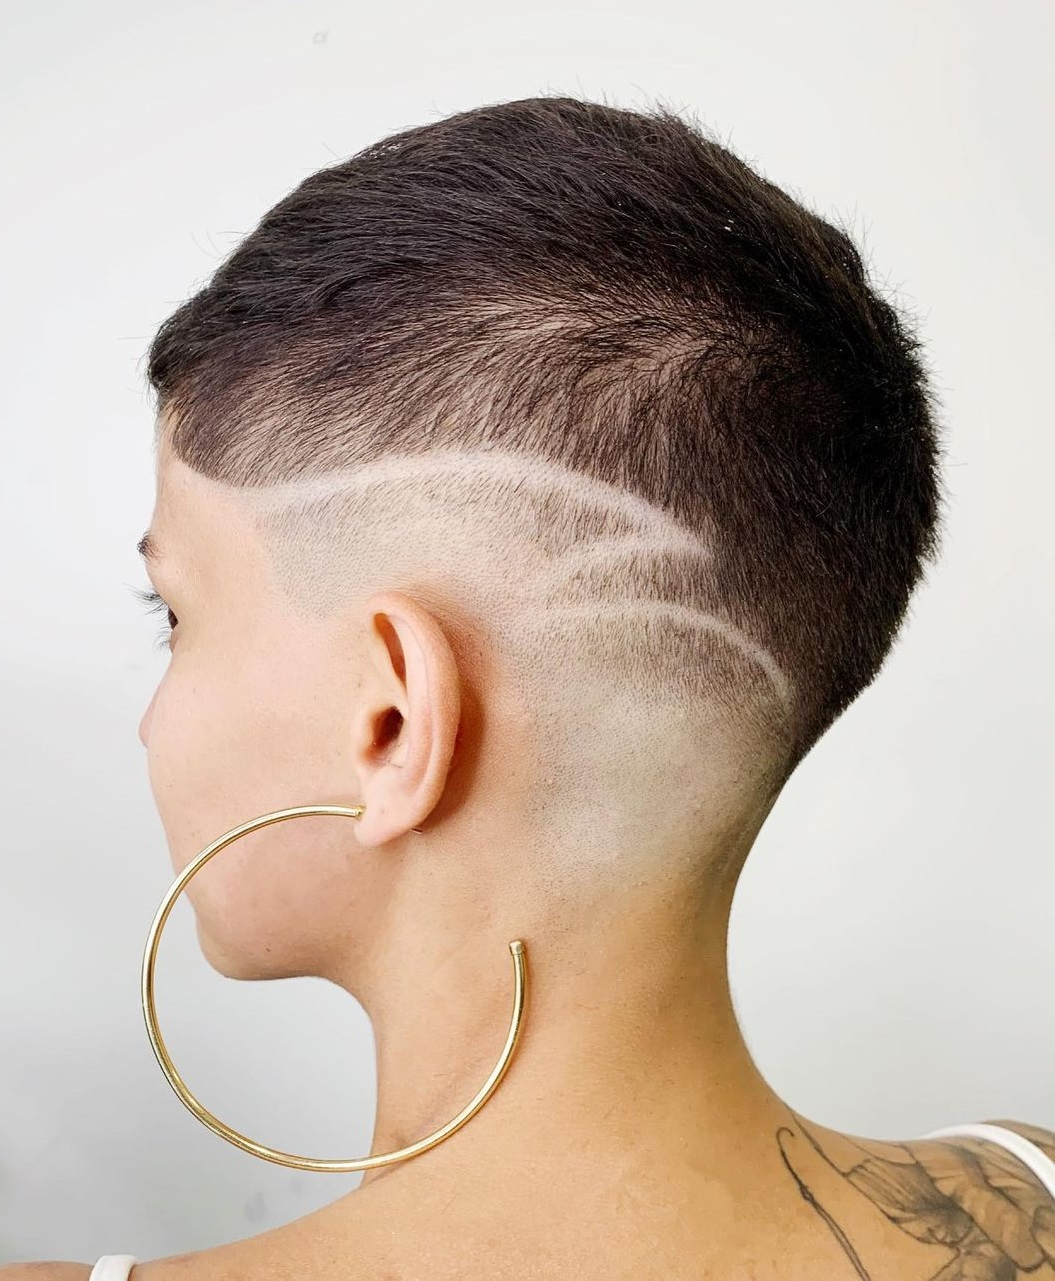 Female Fade with Shaved Design